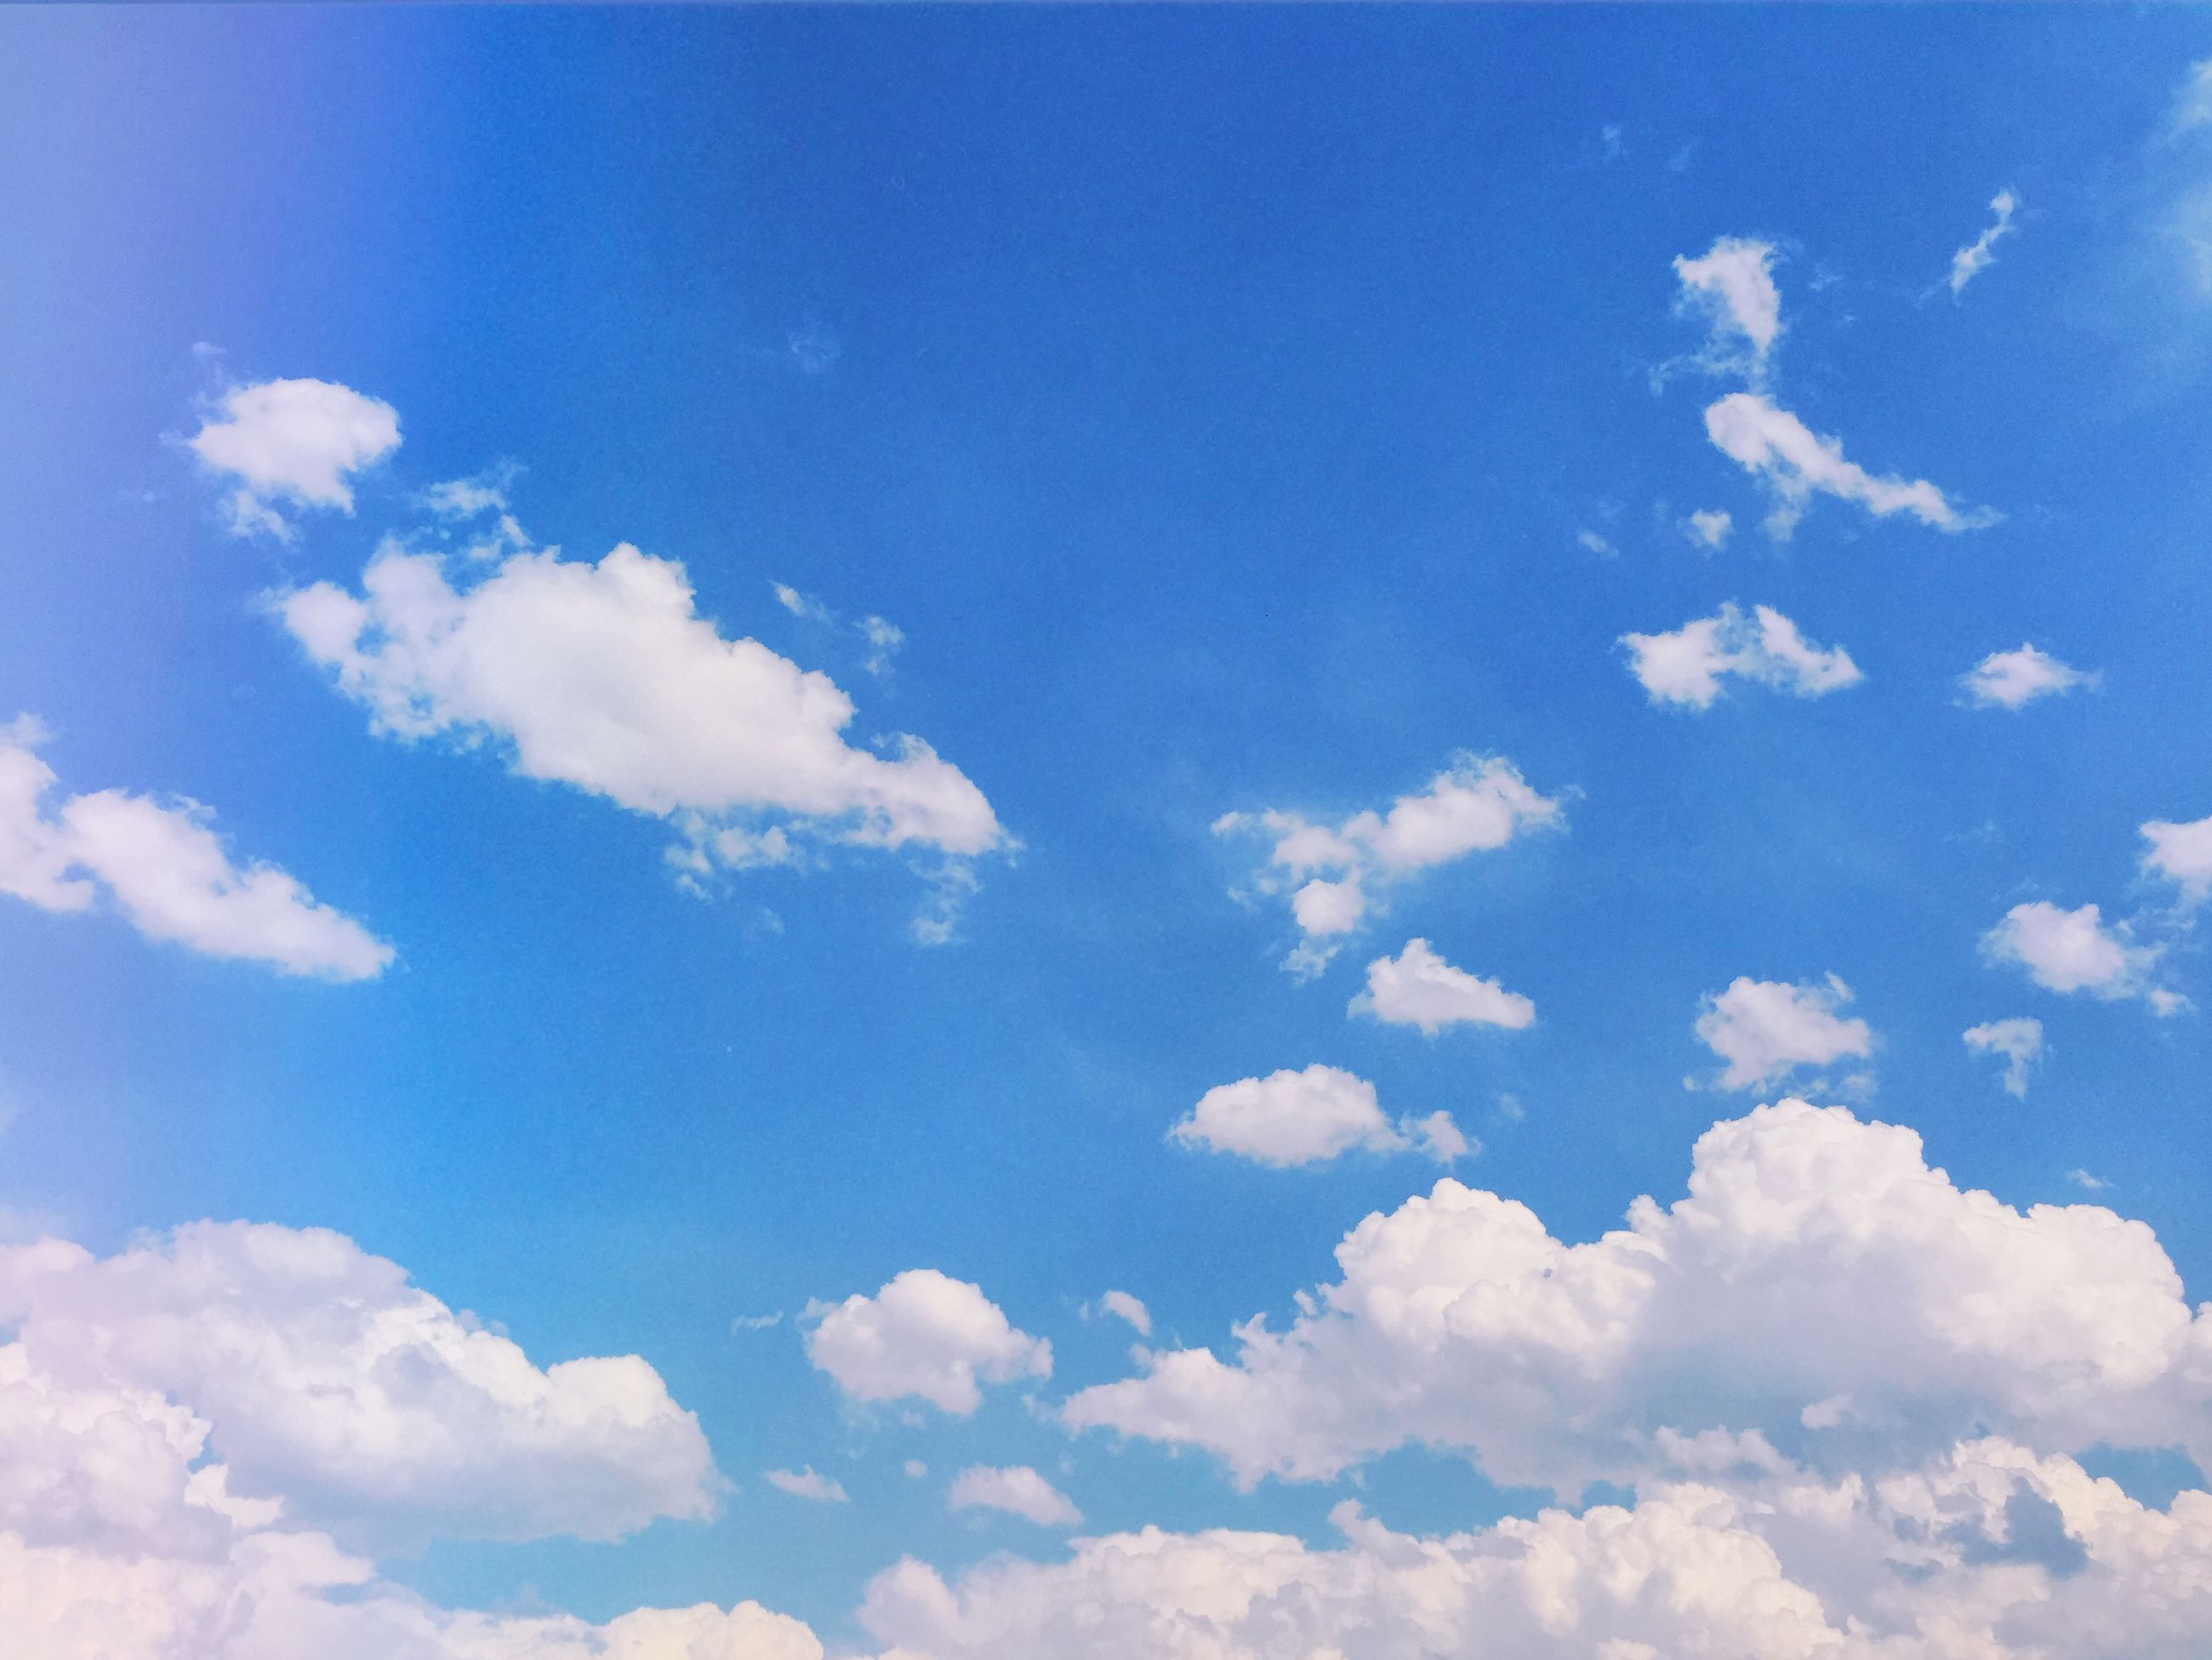 blue, sky, low angle view, sky only, beauty in nature, tranquility, scenics, cloud - sky, nature, tranquil scene, cloudscape, white color, cloud, backgrounds, idyllic, fluffy, cloudy, day, outdoors, full frame